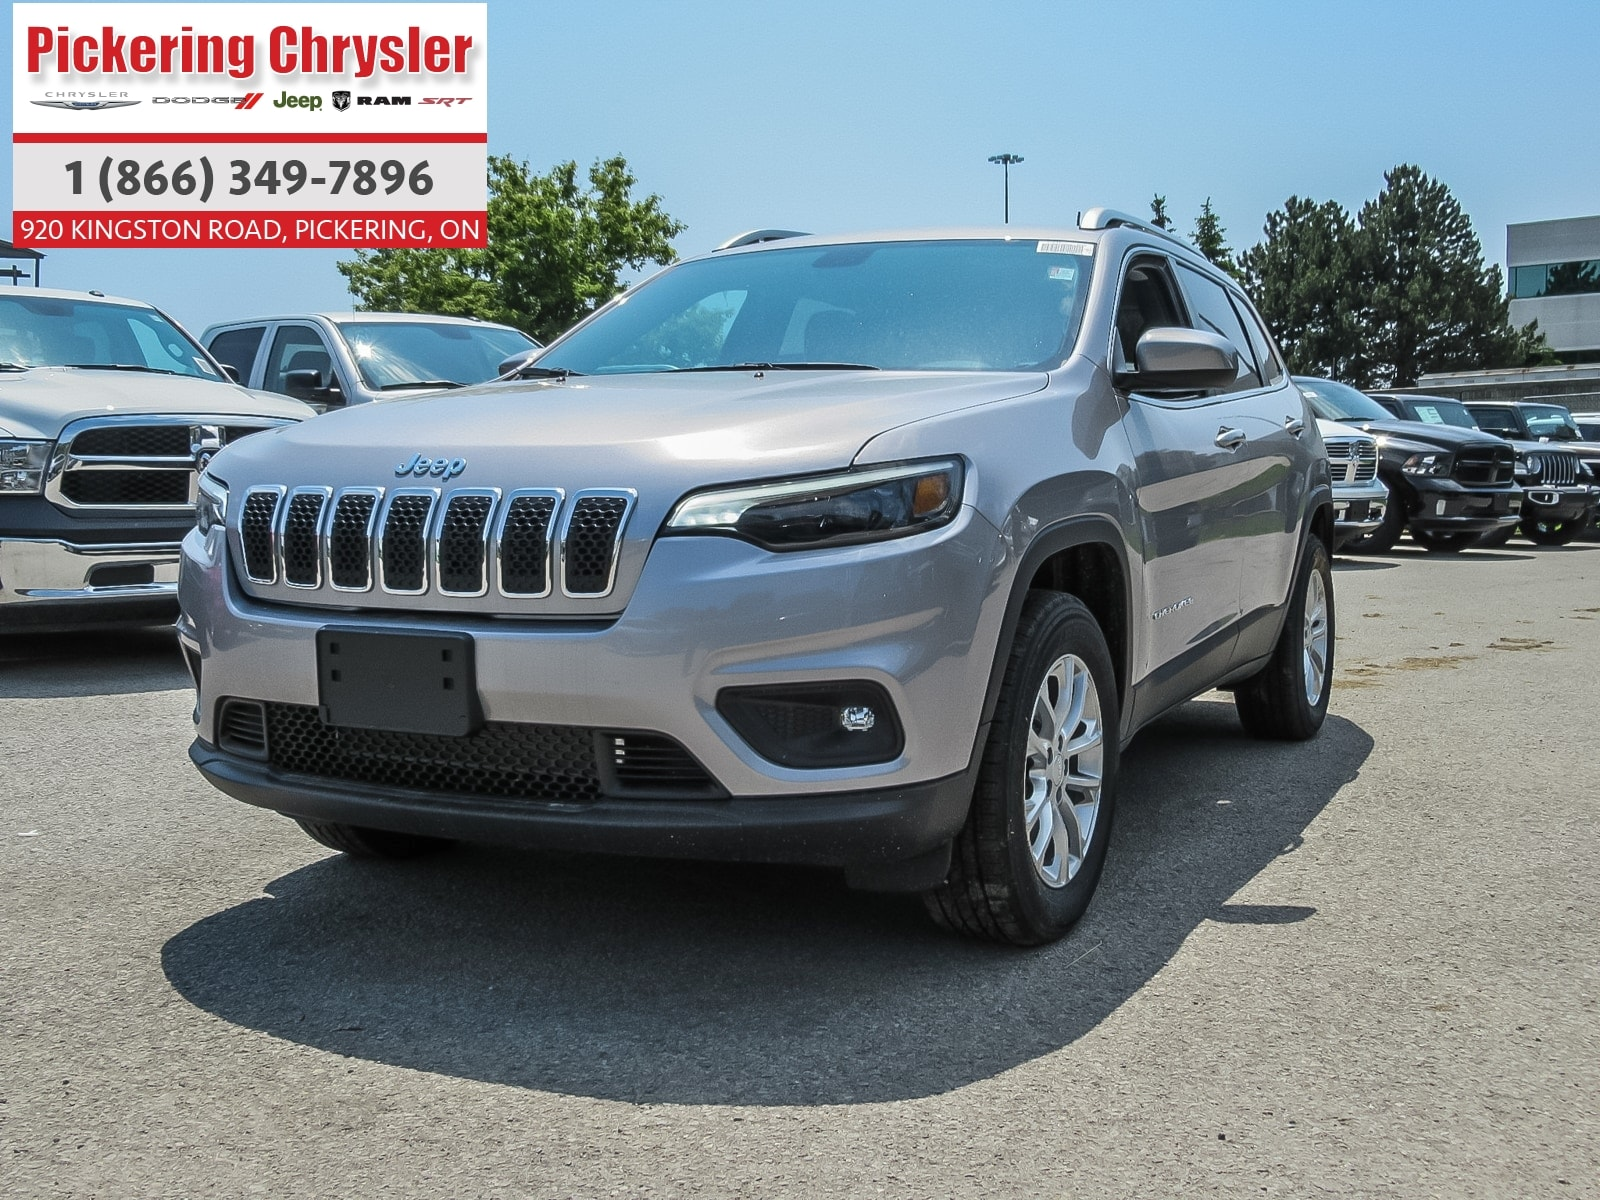 2019 Jeep New Cherokee HEATED SEATS ALLOYS PUSH START REMOTE START SUV